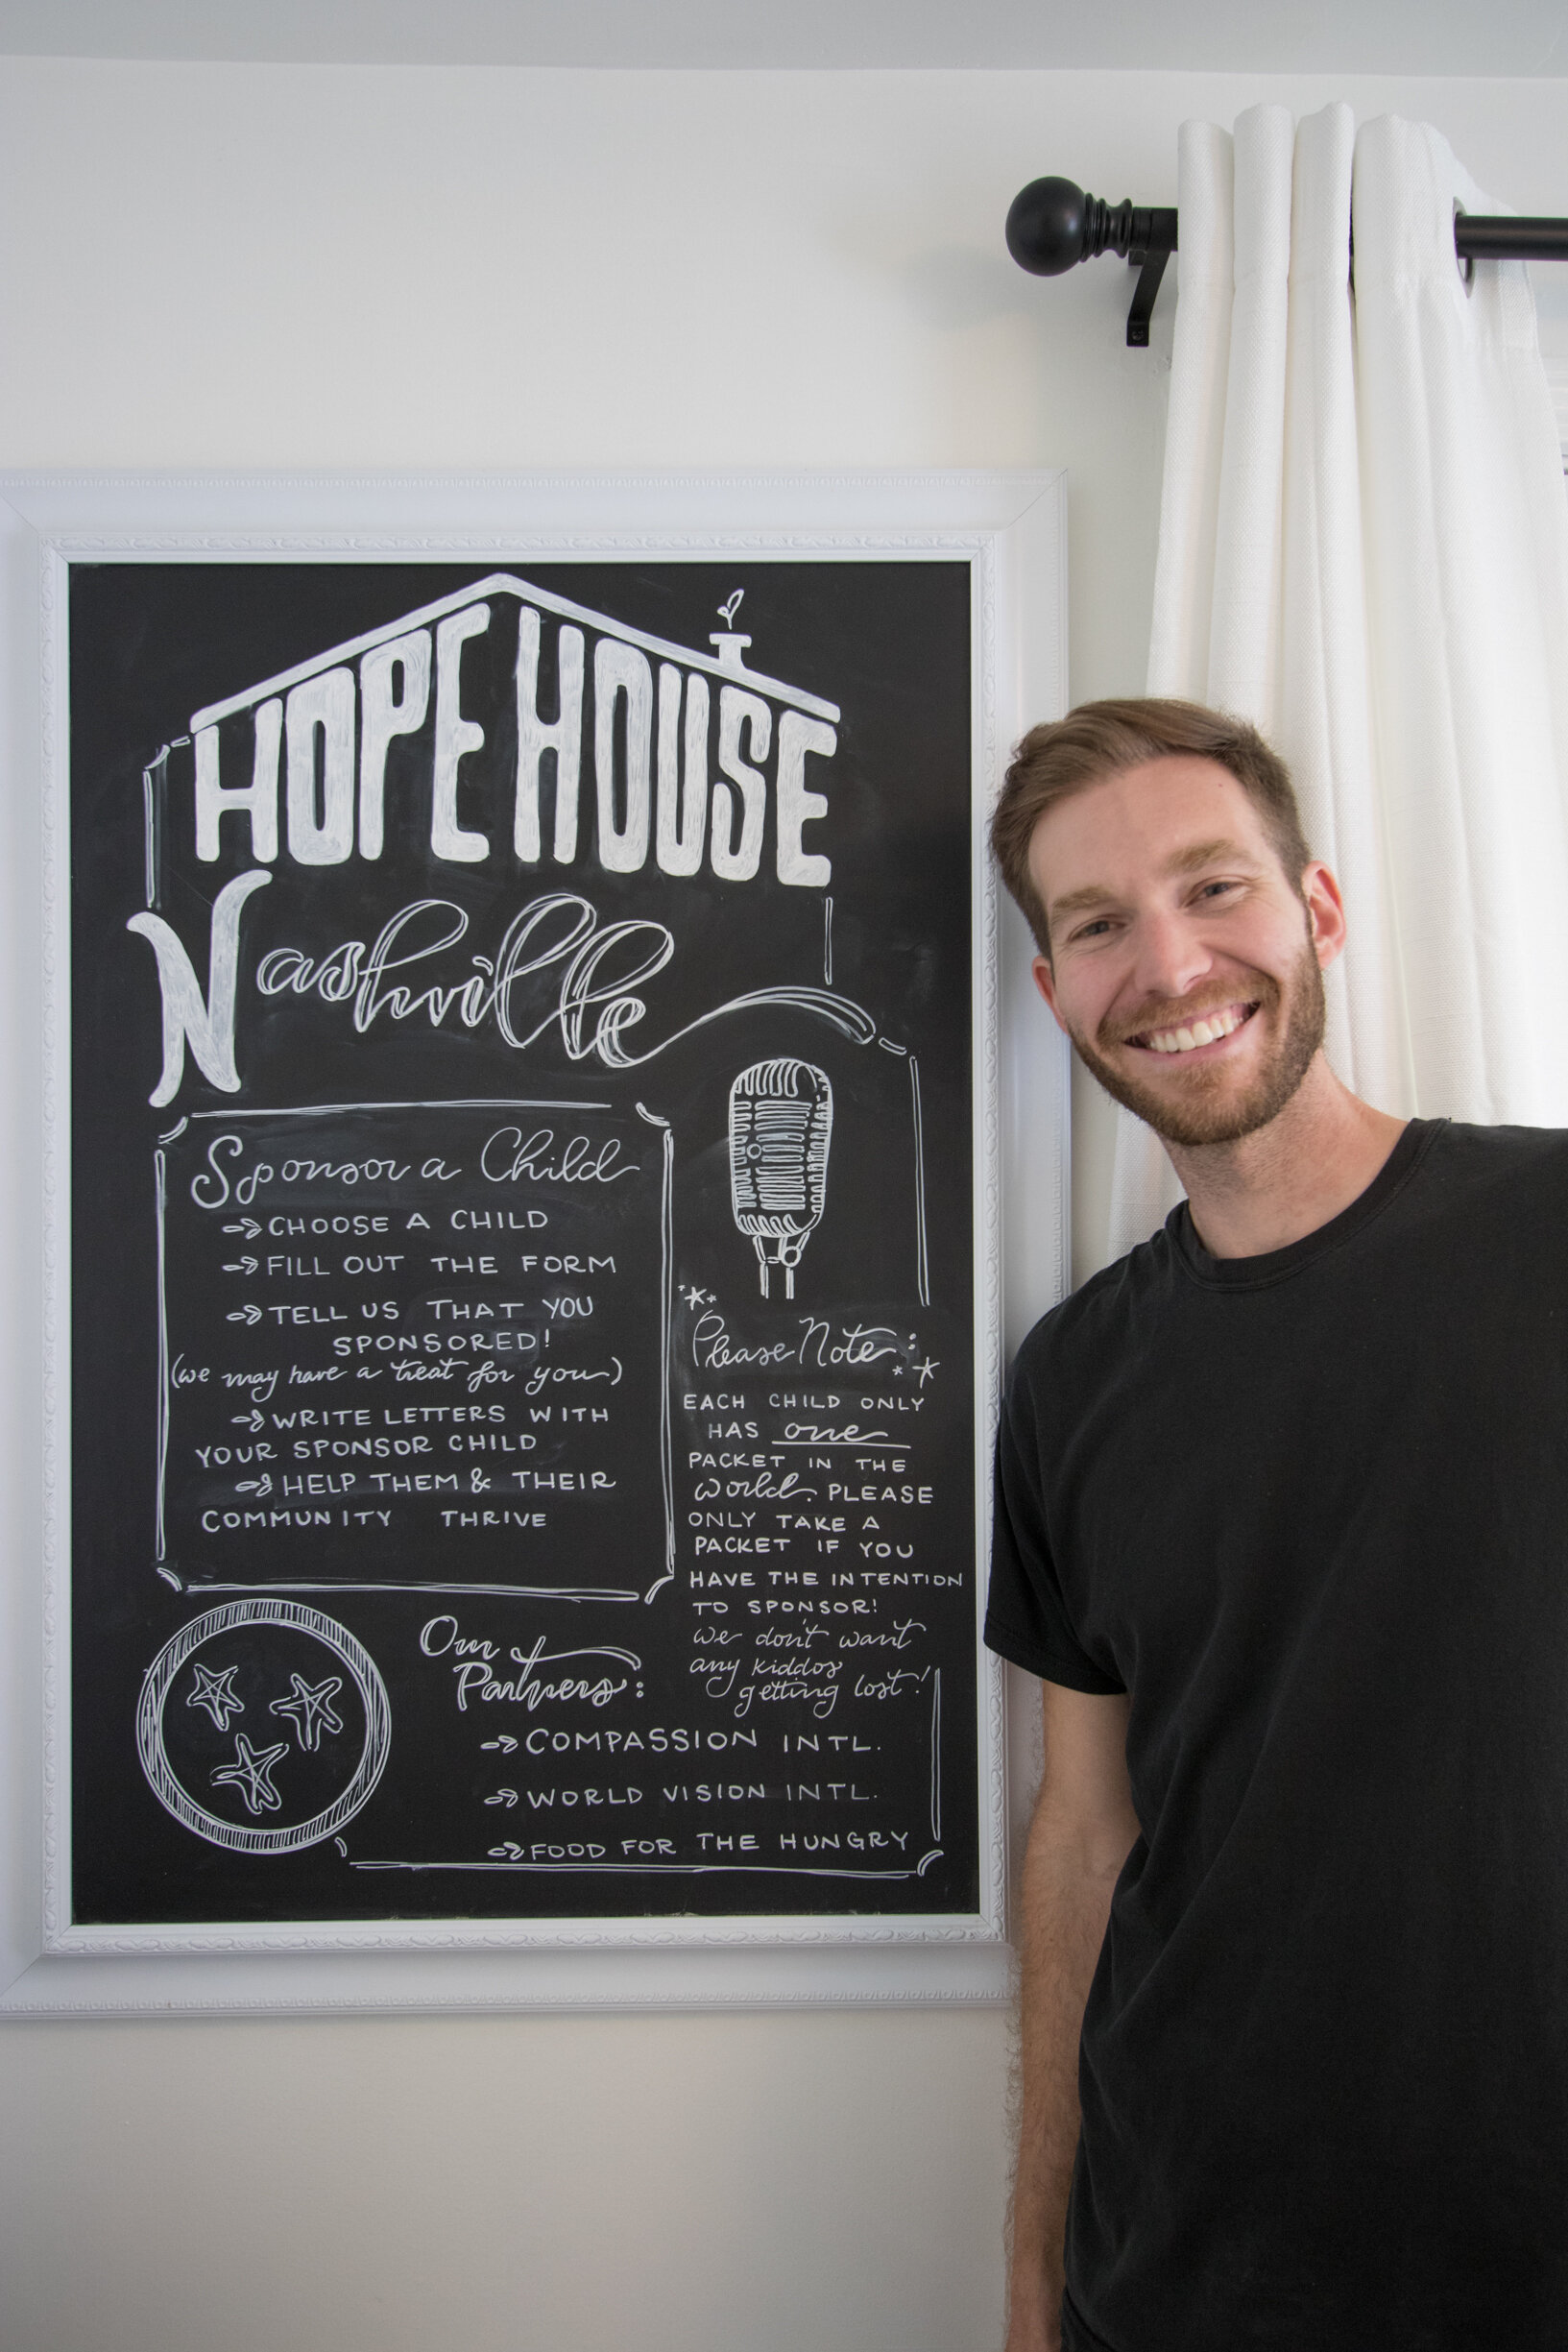 Hope House Nashville - Alex Craft